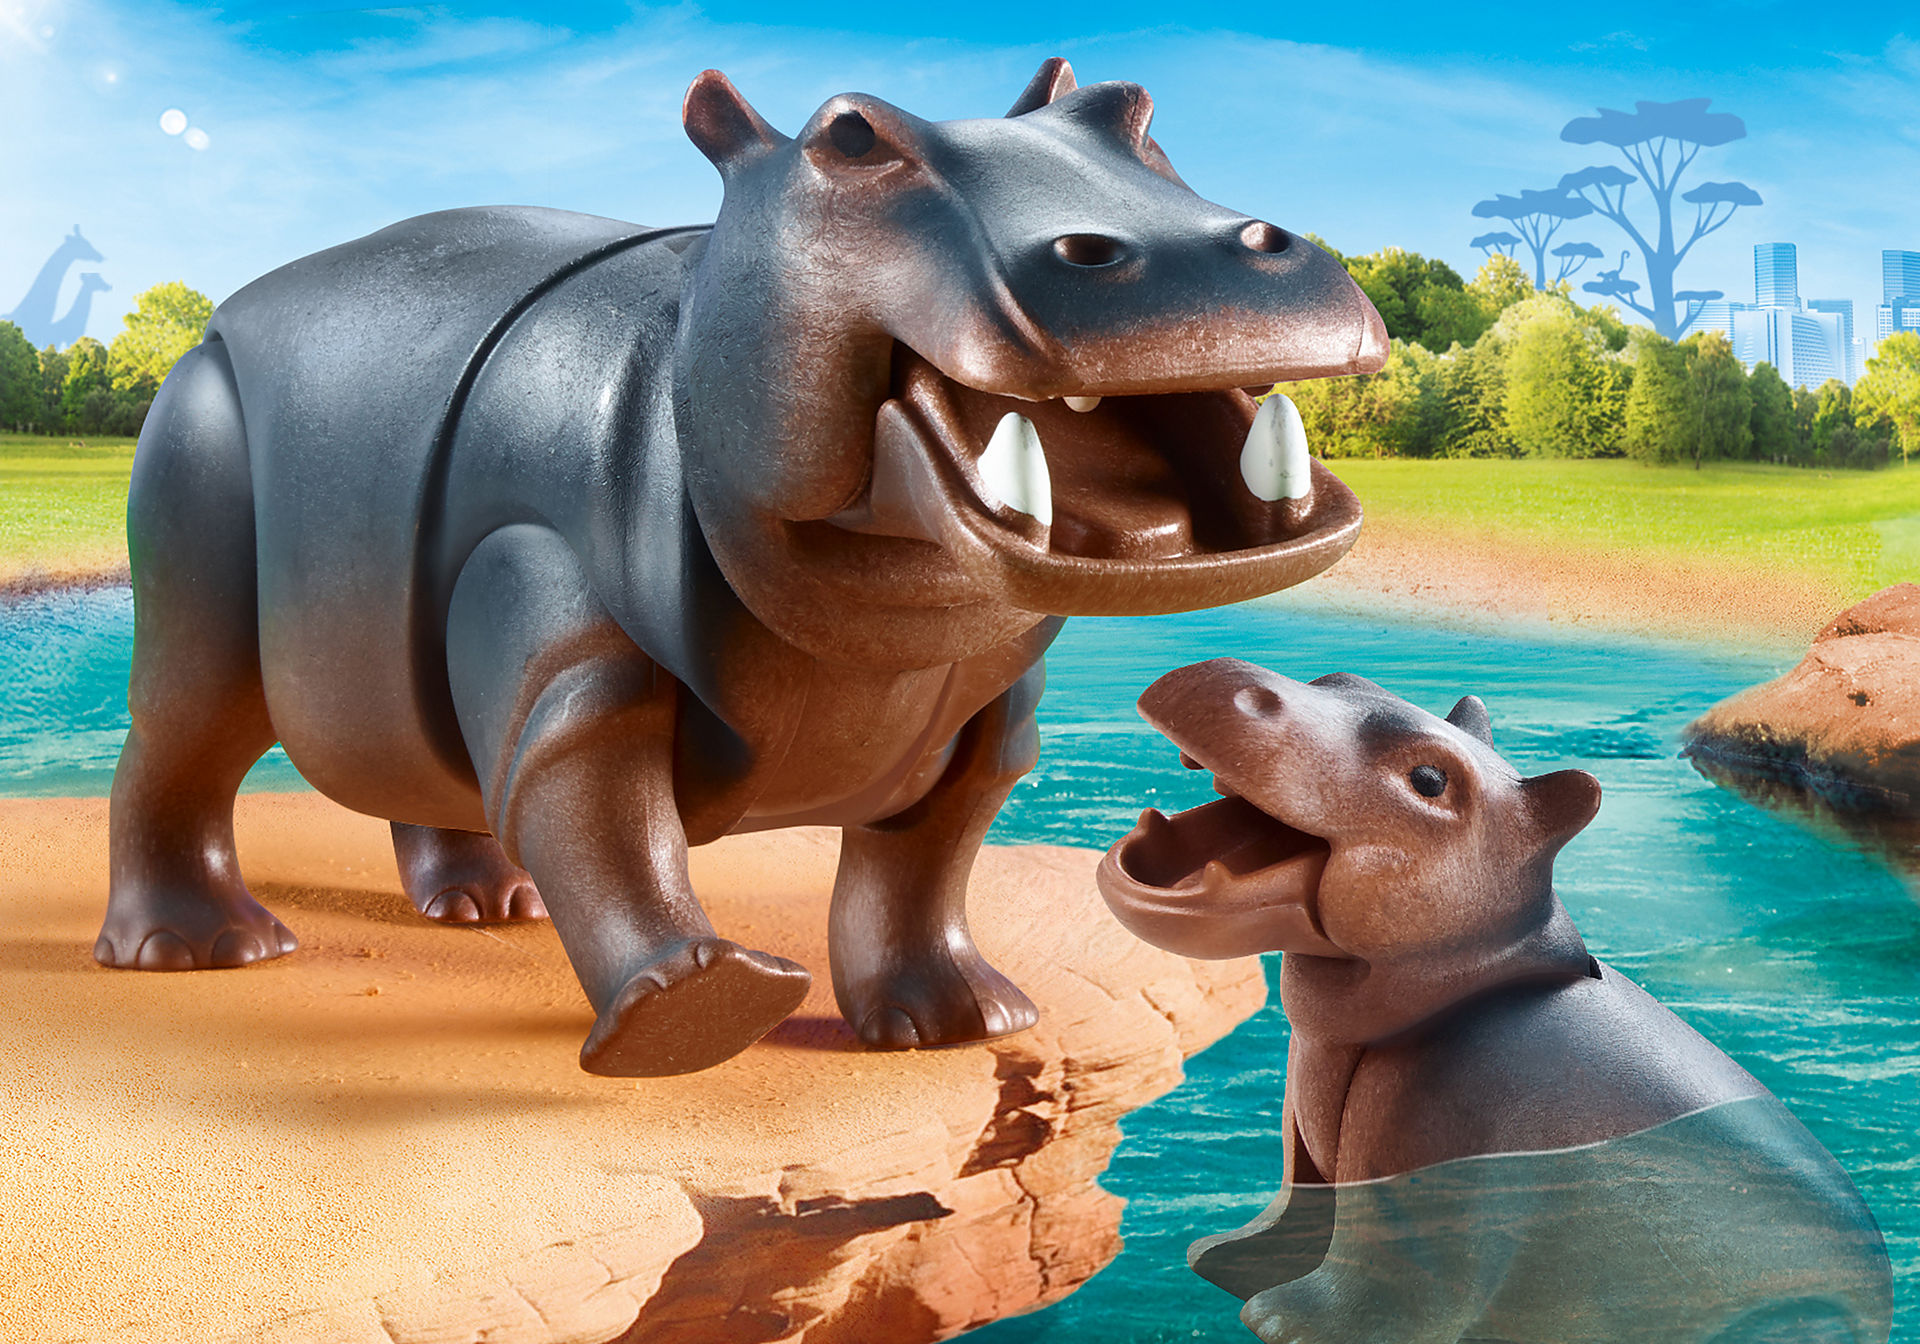 70354 Hippo with Calf zoom image1